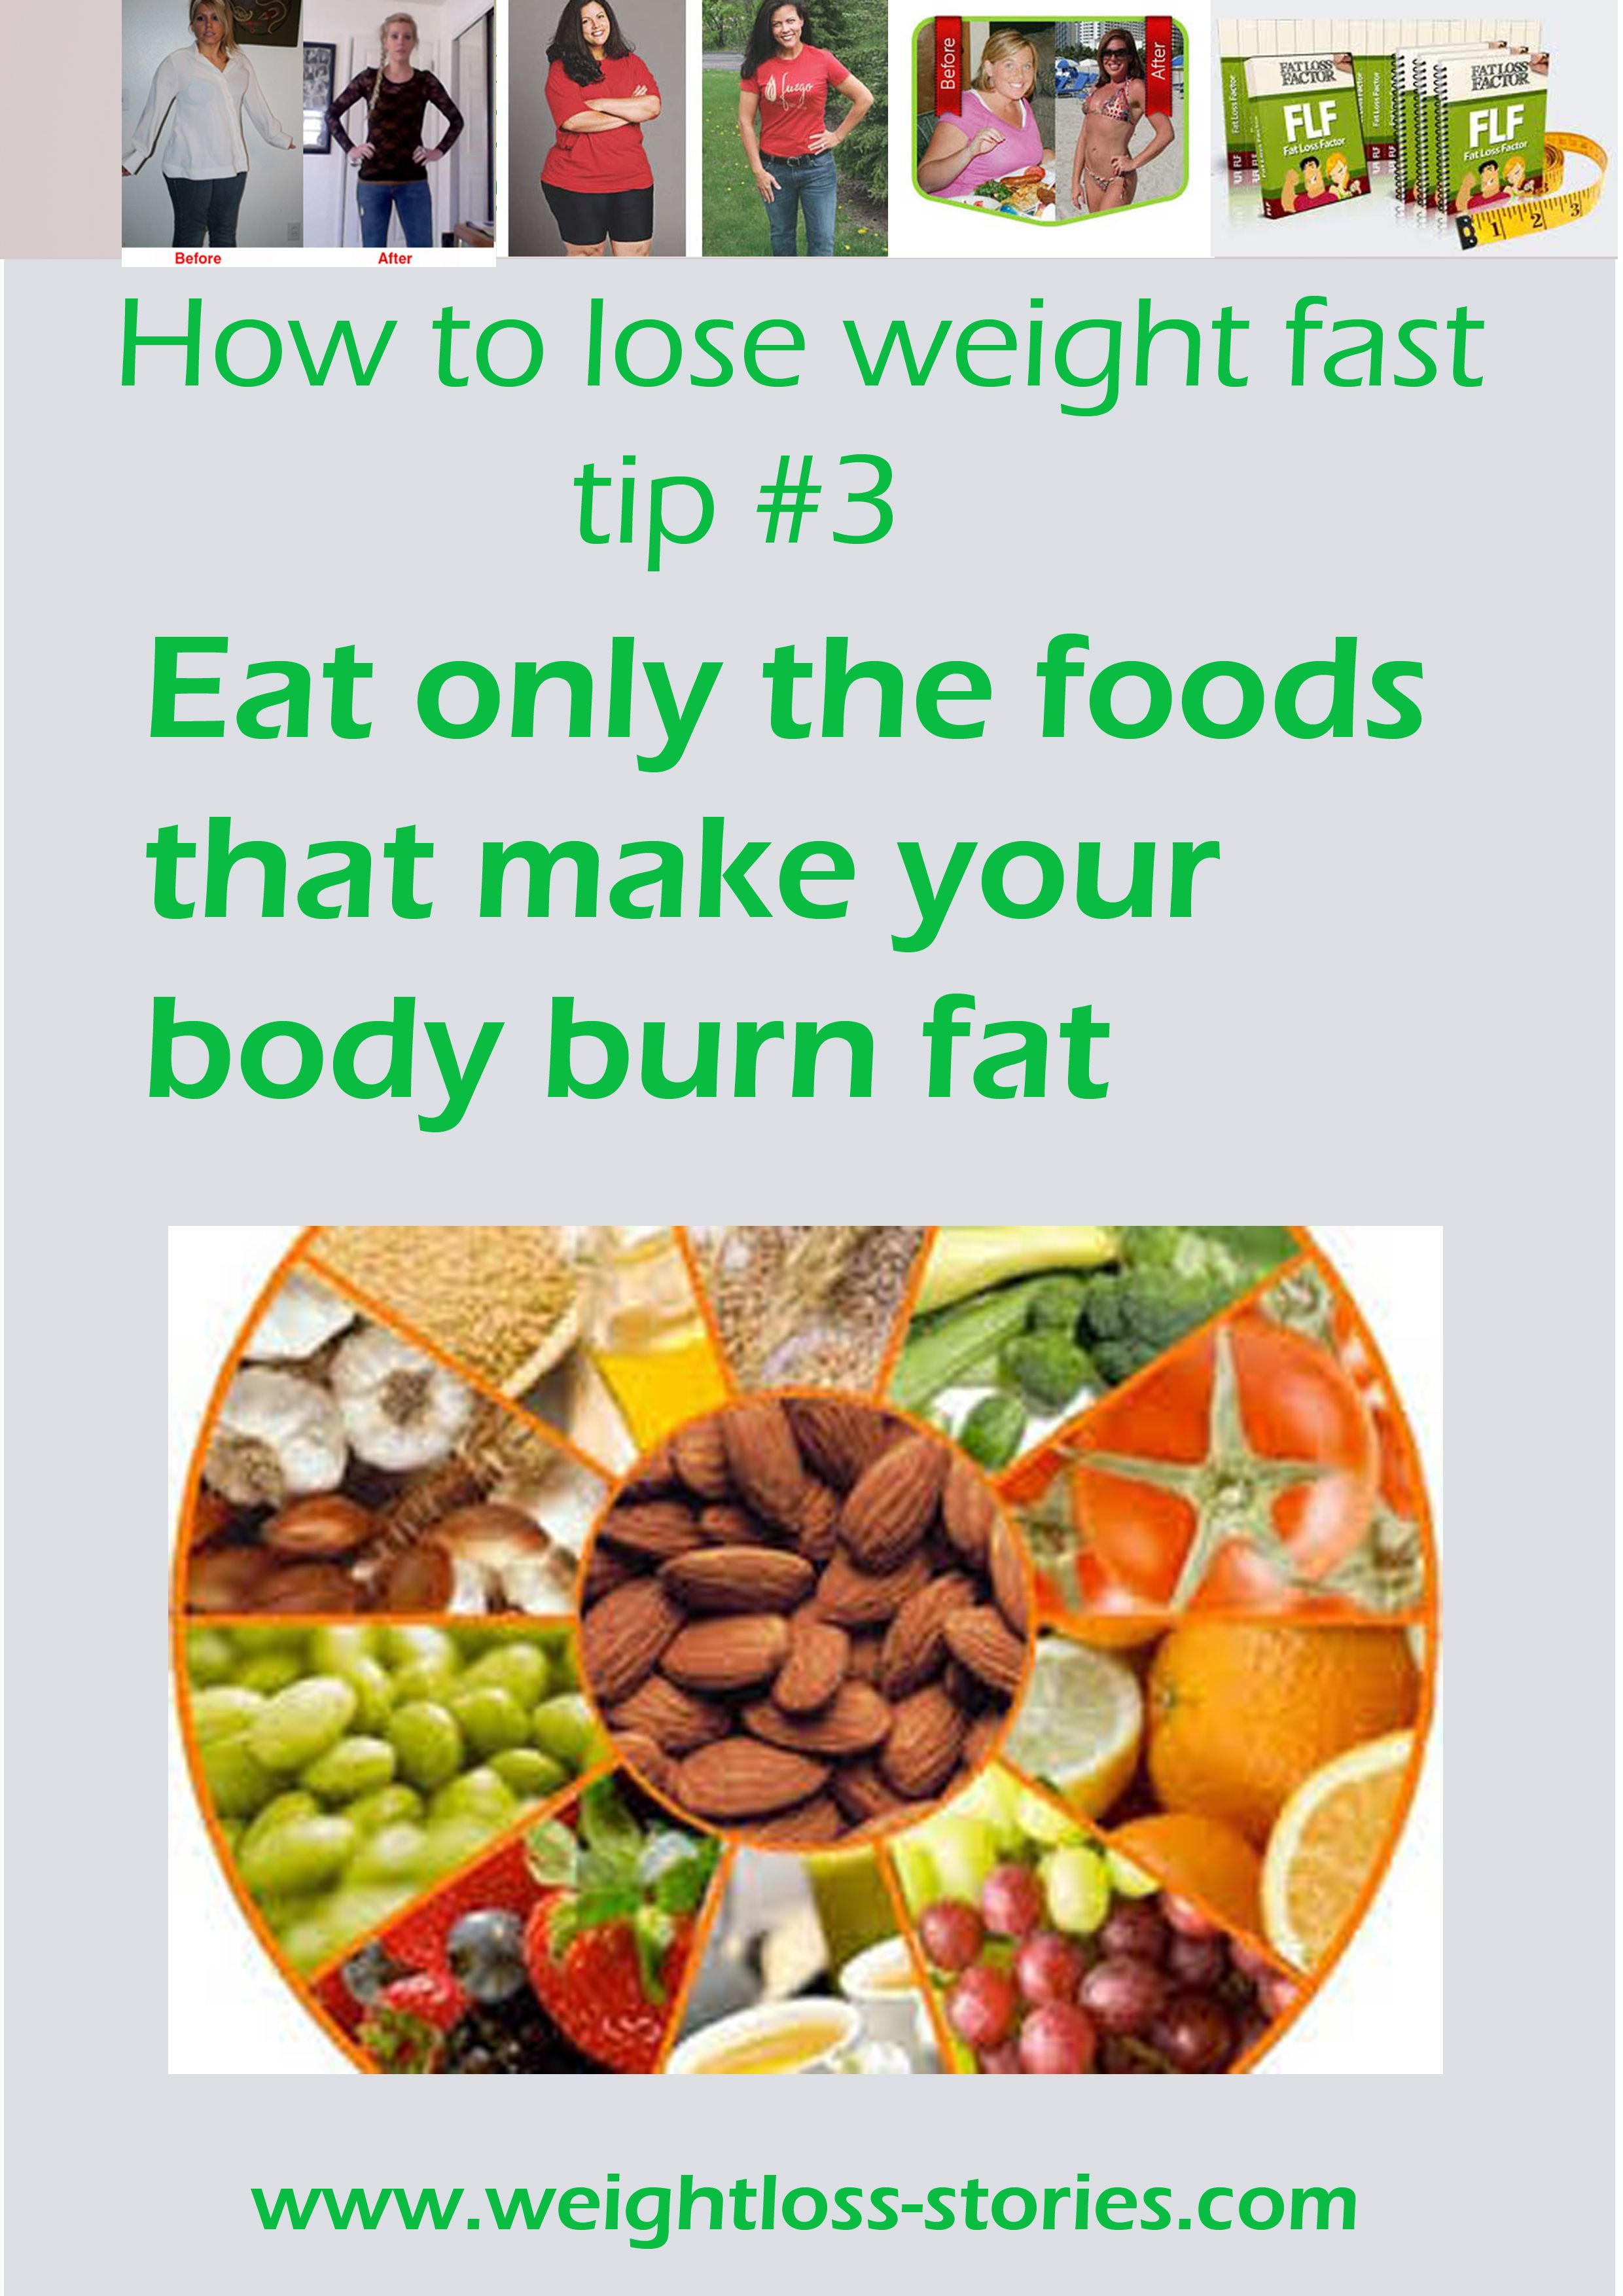 What To Eat For Fast Weight Loss How To Lose Weight Fast For Women Tips 3 Eat Only The